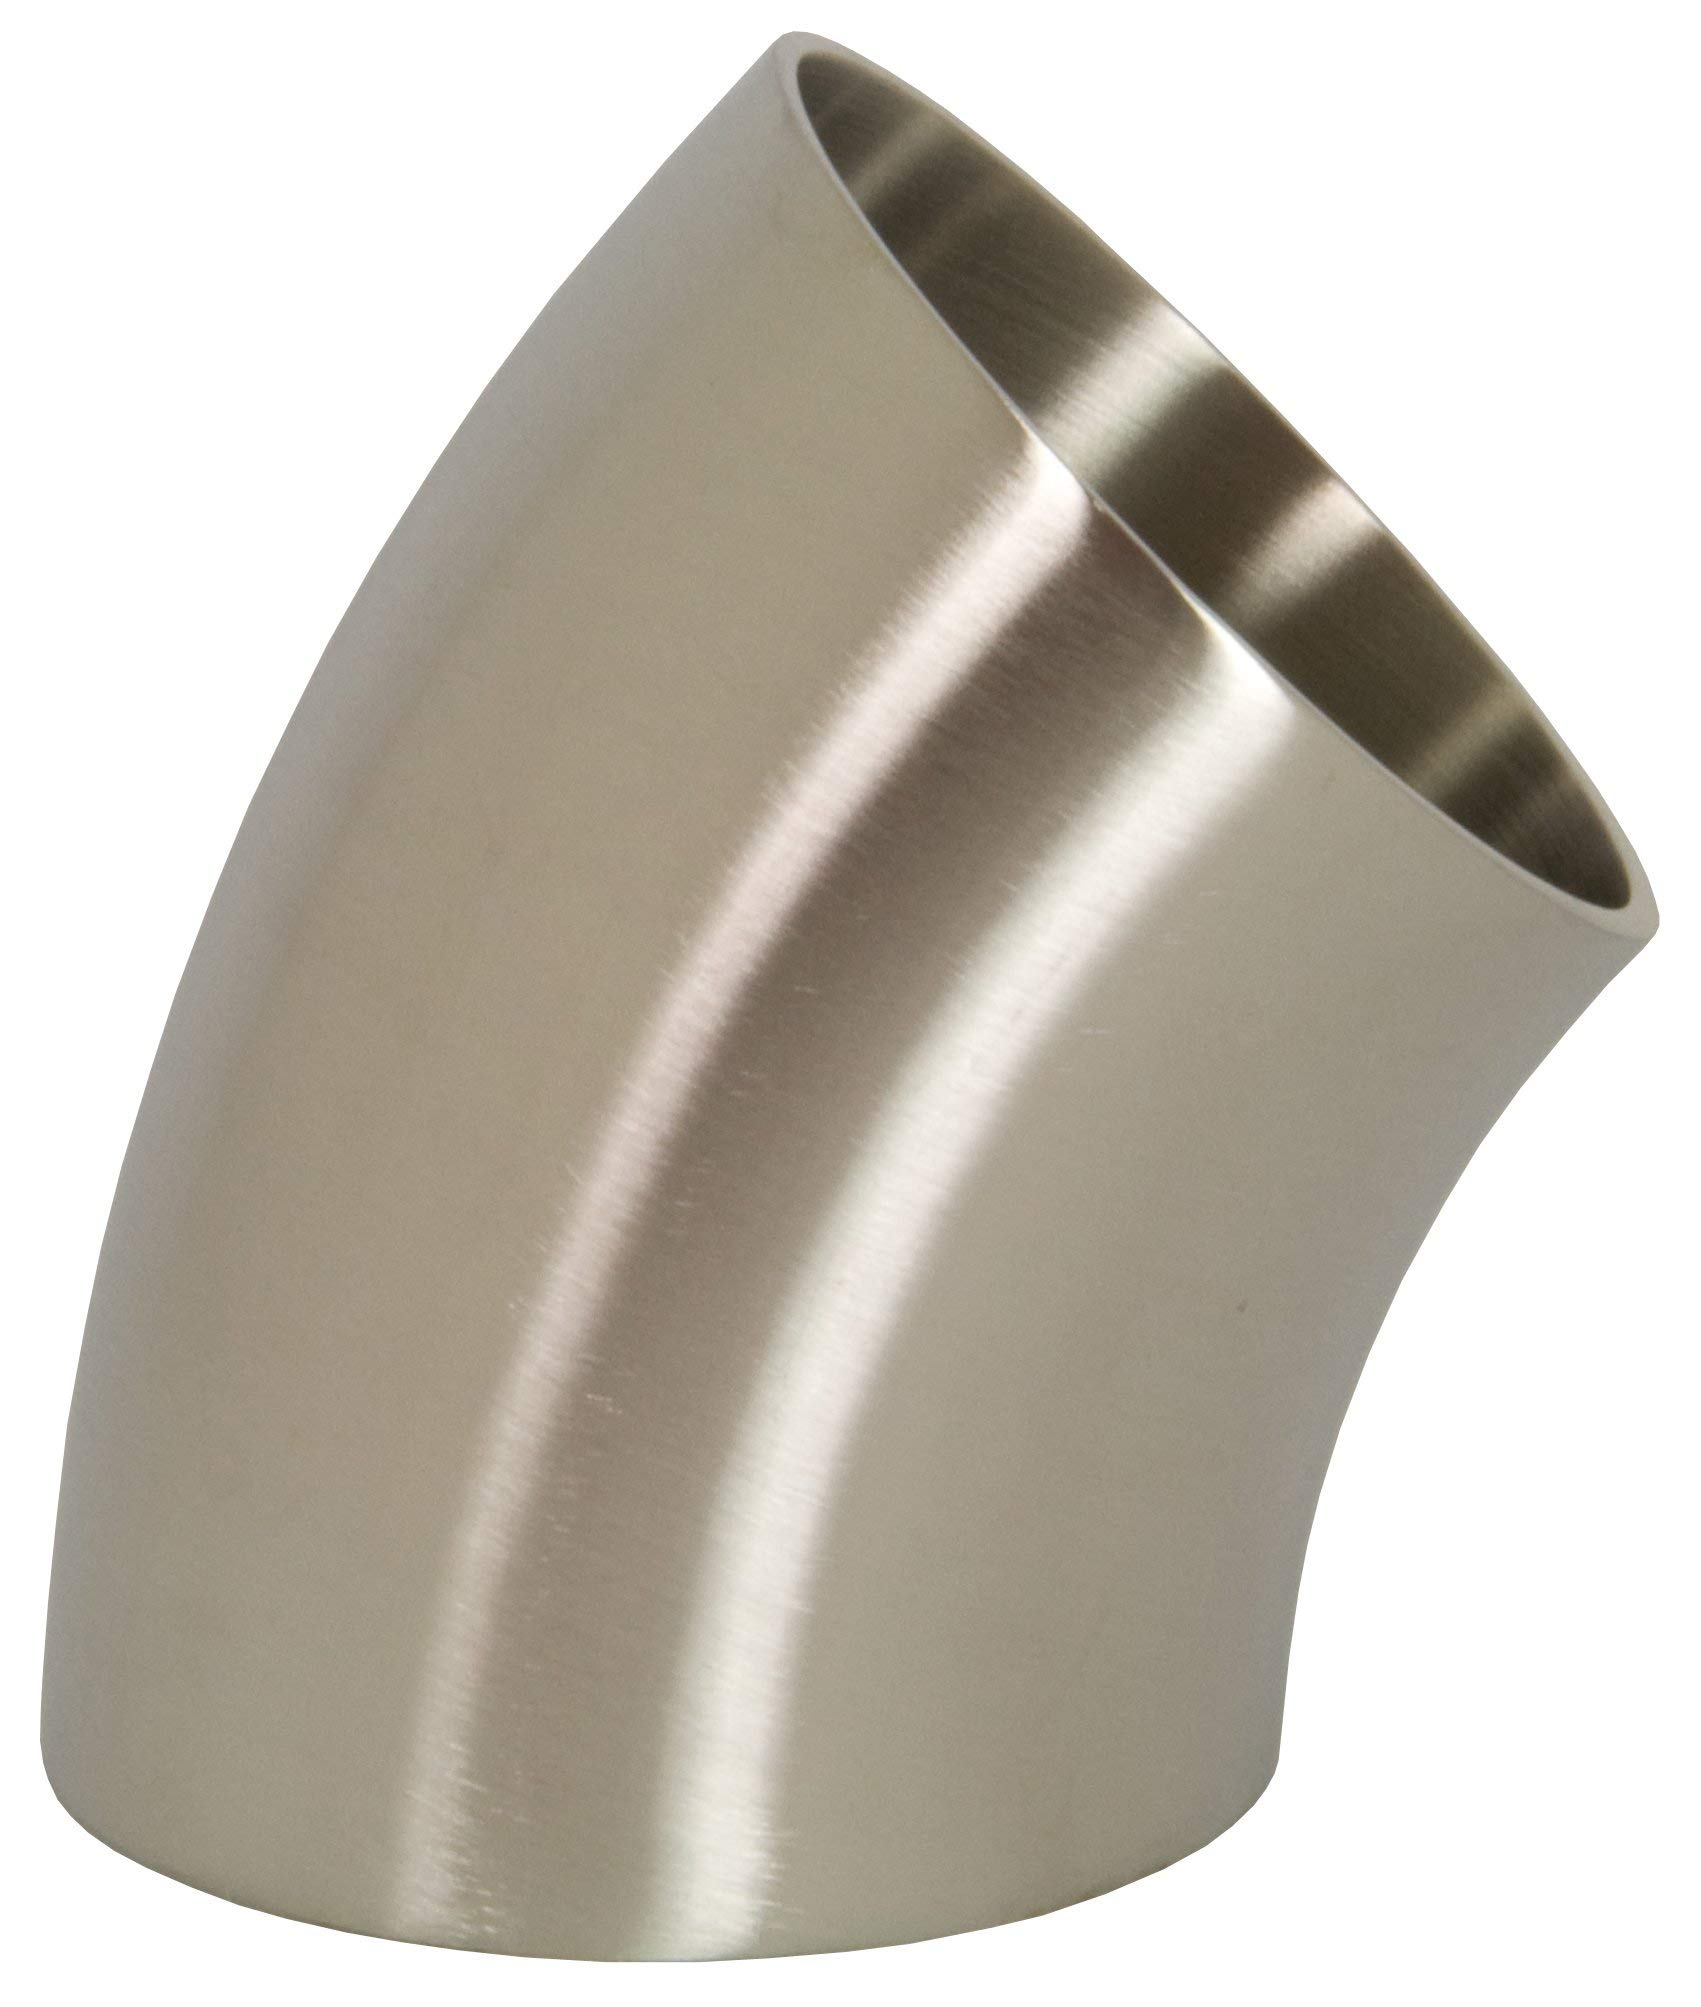 Dixon B2WK-G200P Stainless Steel 304 Sanitary Fitting, 45 Degree Polished Weld Short Elbow, 2'' Tube OD by Dixon Valve & Coupling